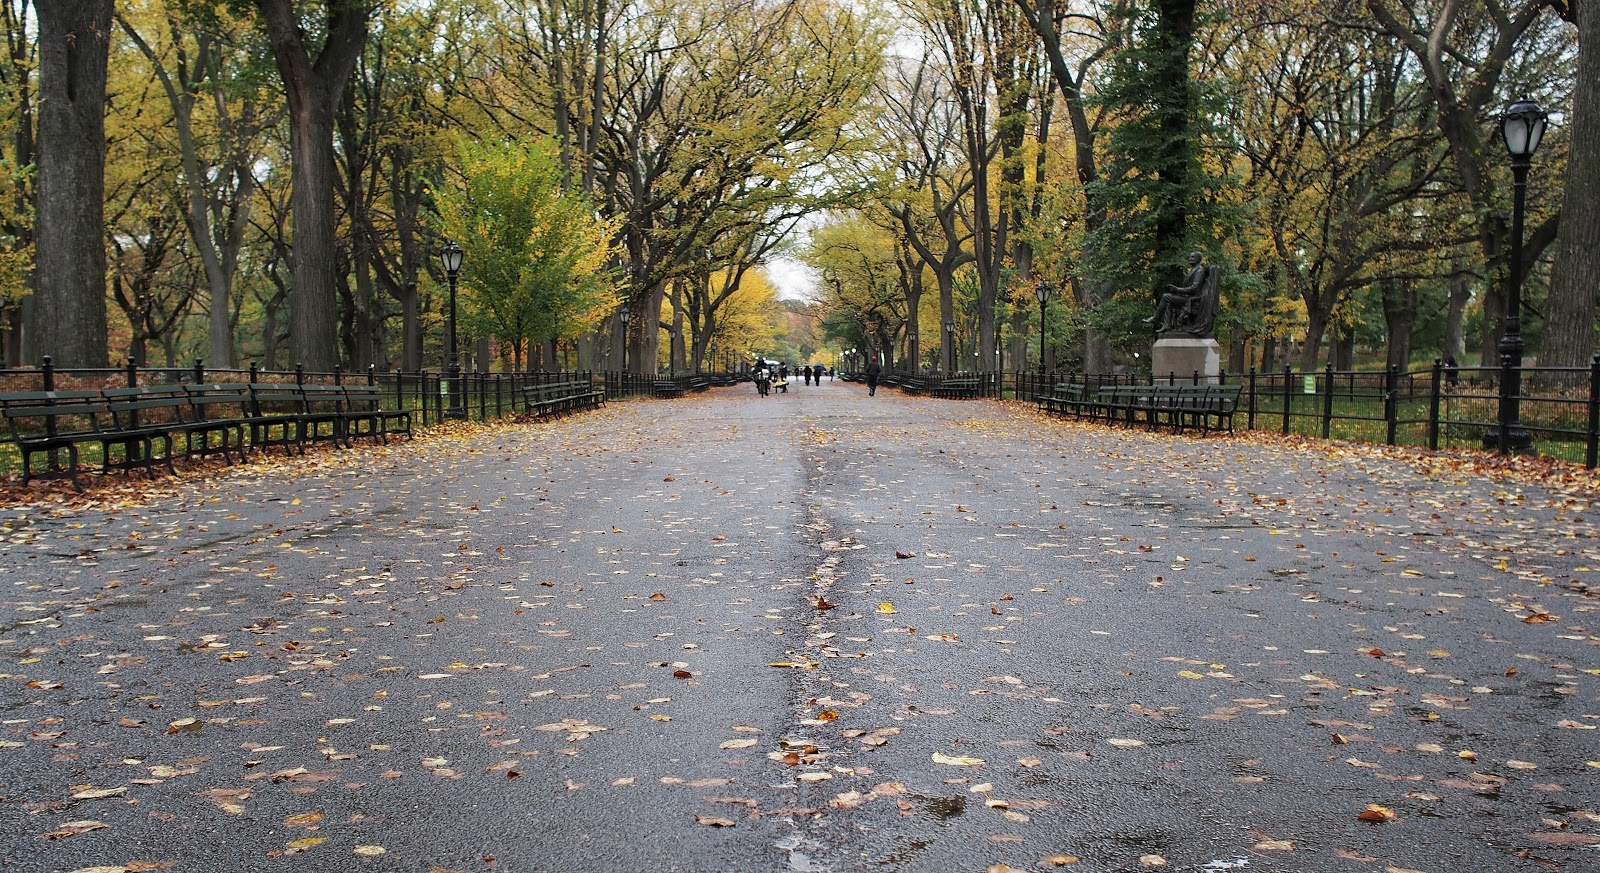 The Mall, #themall #centralpark #nyc #fall #fallfoliage #rainyday 2014 #fall #fallfoliage